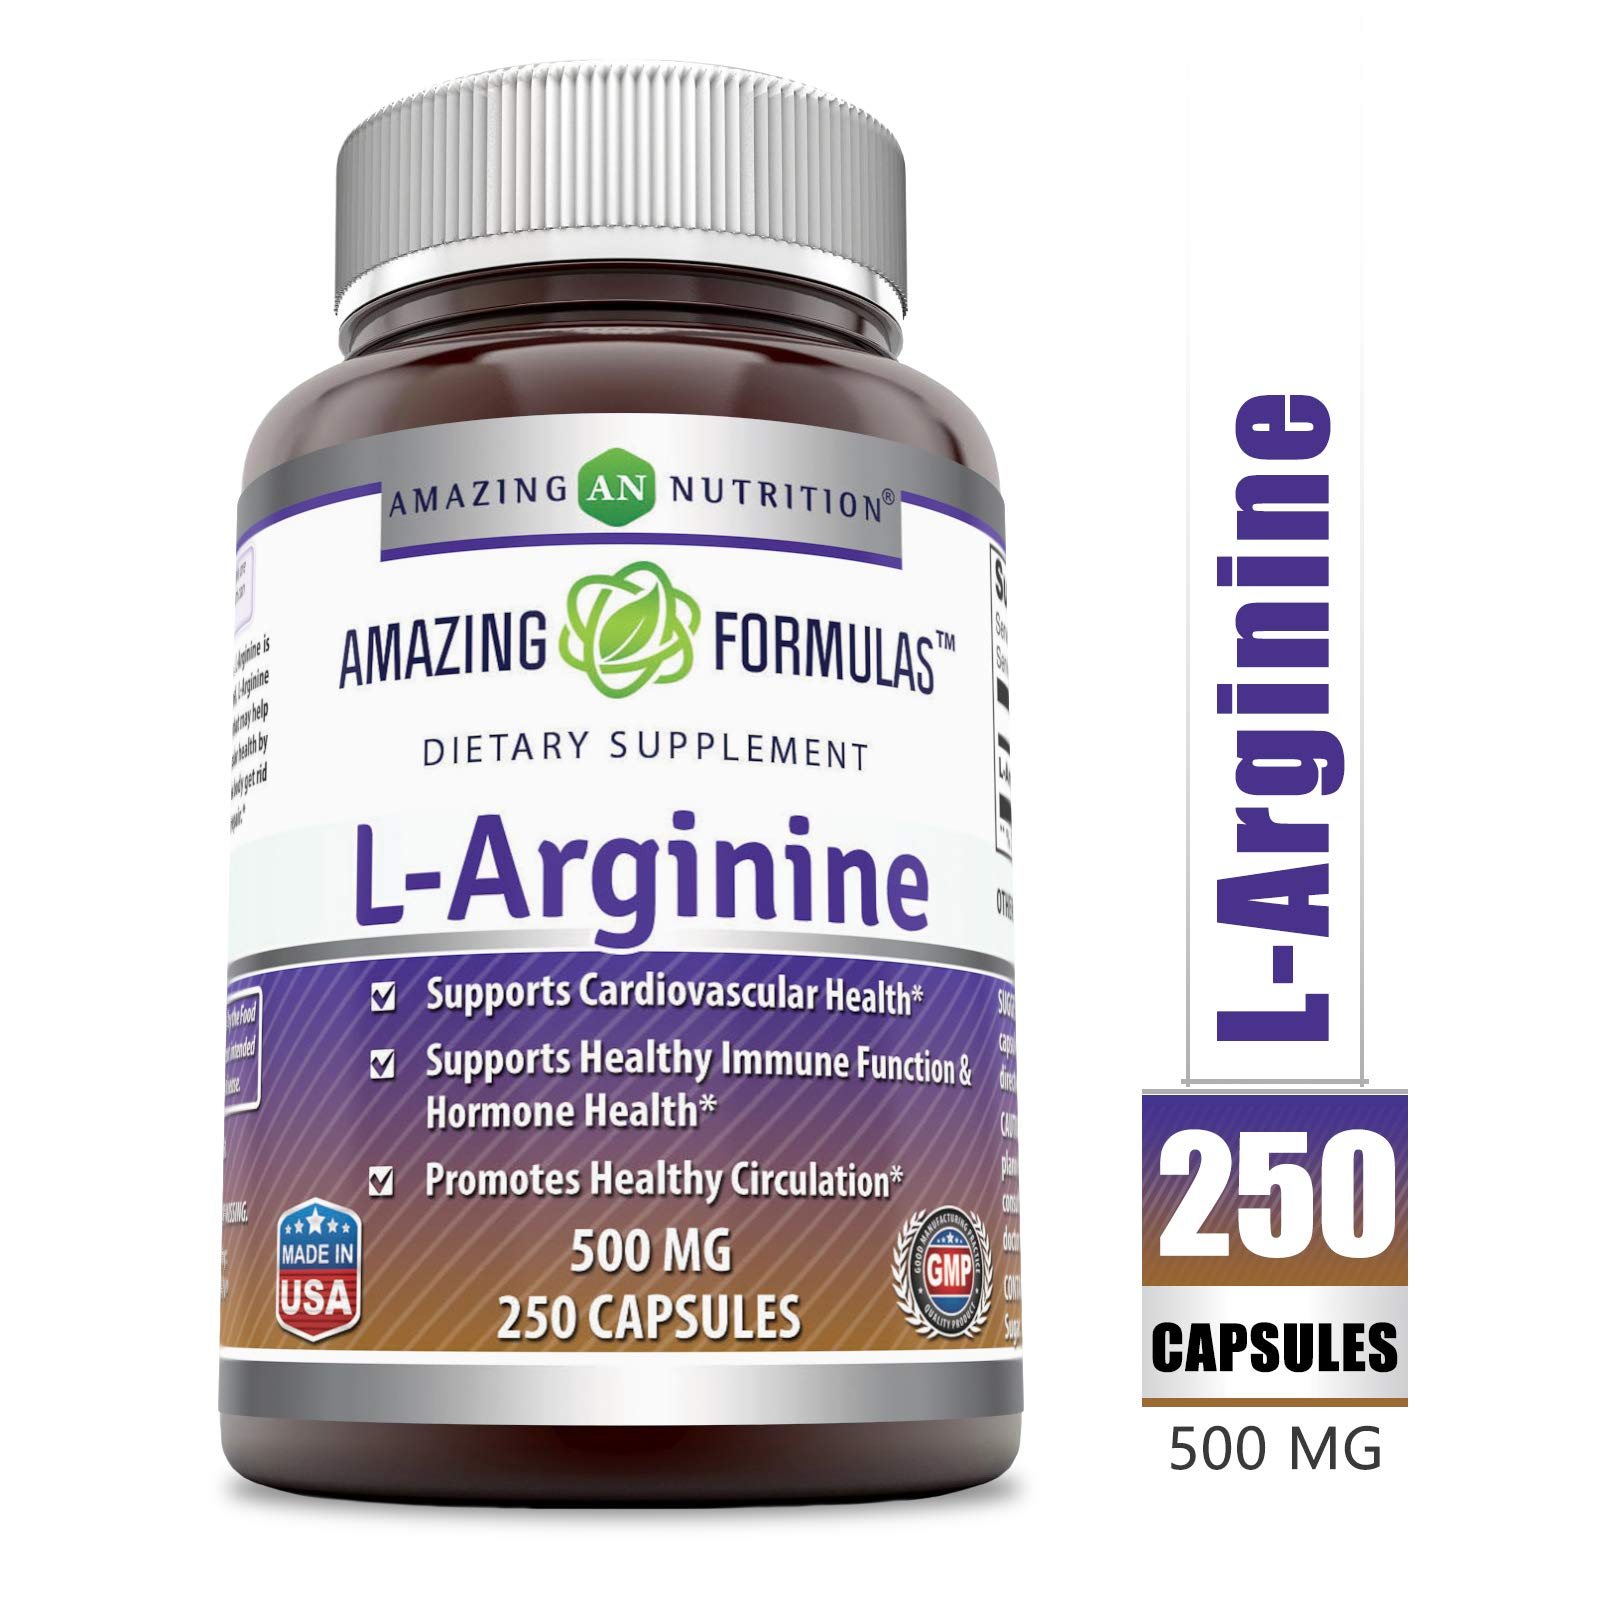 Amazing Formulas L-Arginine 500 mg Supplement - Best Amino Acid Arginine HCL Supplements for Women & Man - Promotes Circulation and Supports Cardiovascular Health - 250 Capsules by Amazing Nutrition